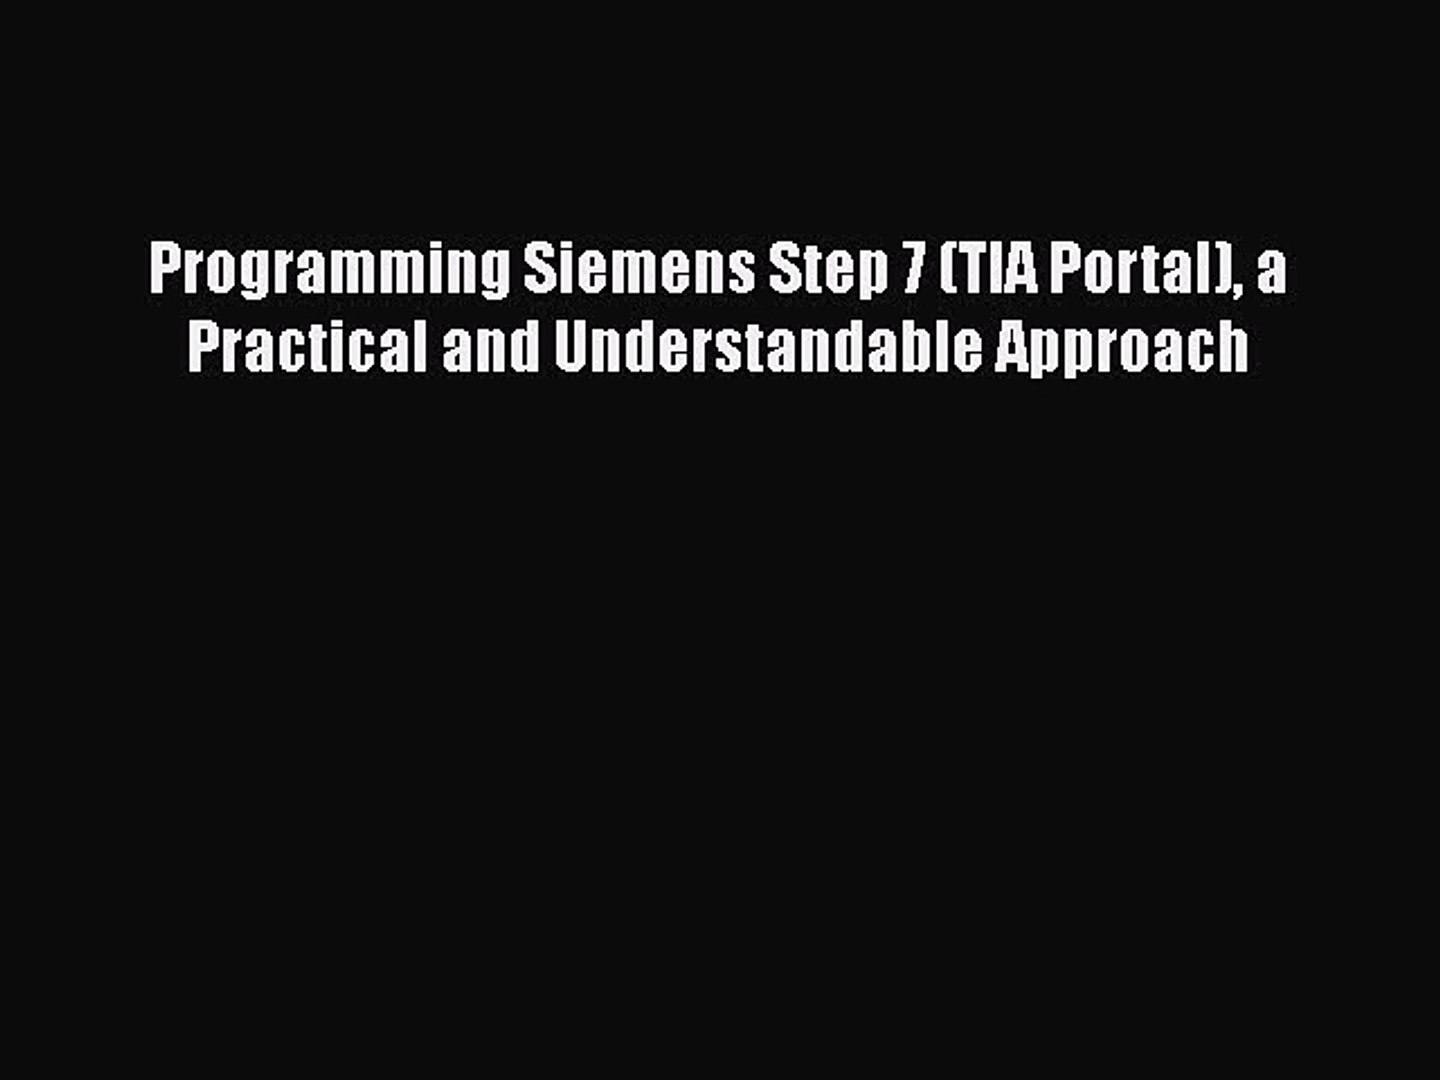 Download Programming Siemens Step 7 (TIA Portal) a Practical and  Understandable Approach PDF